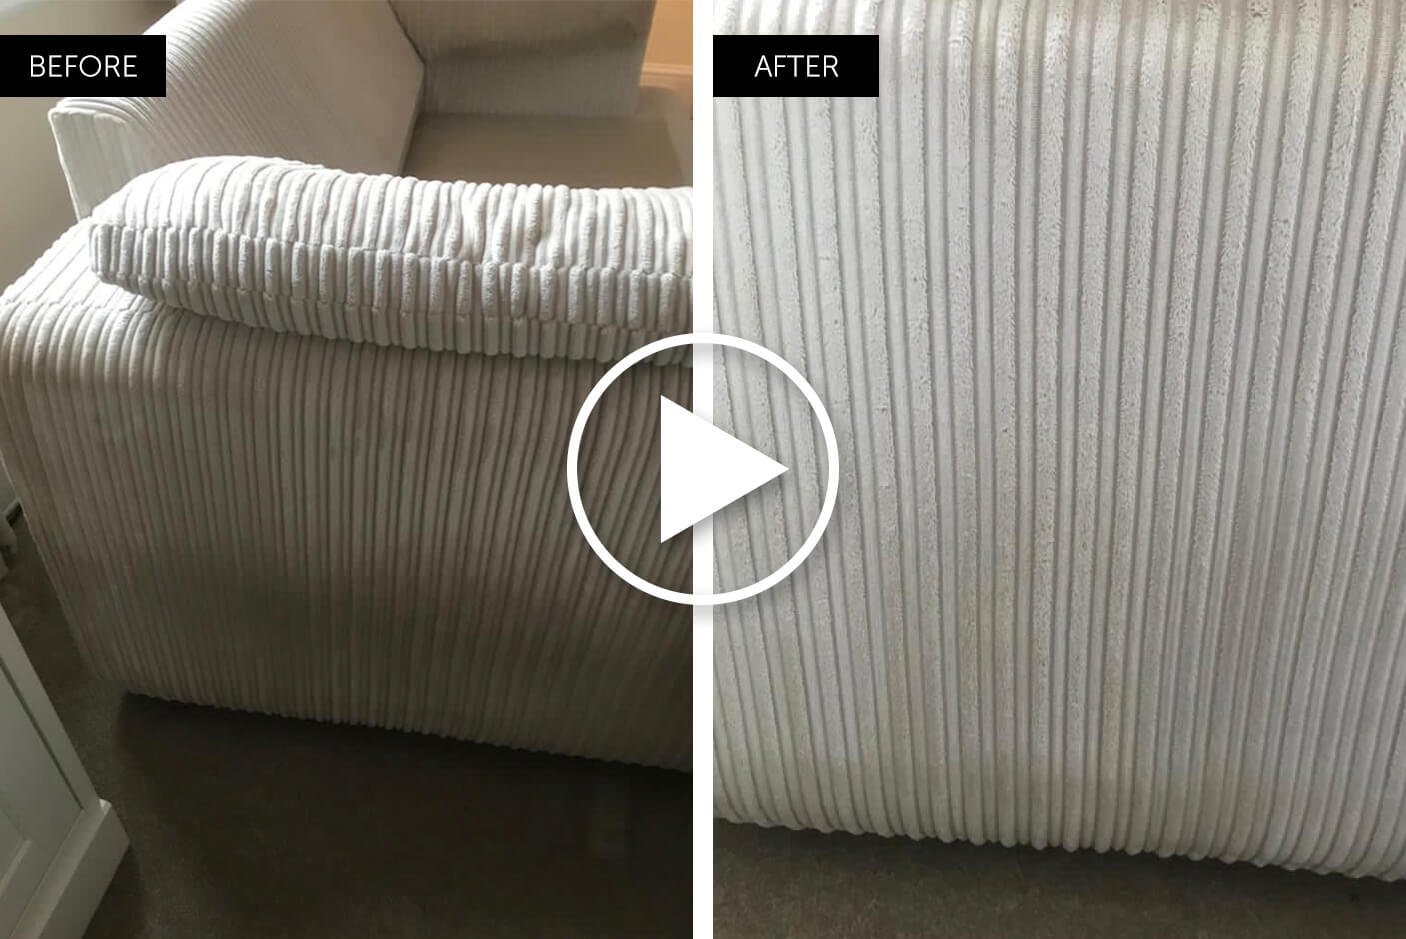 professional upholstery cleaning video